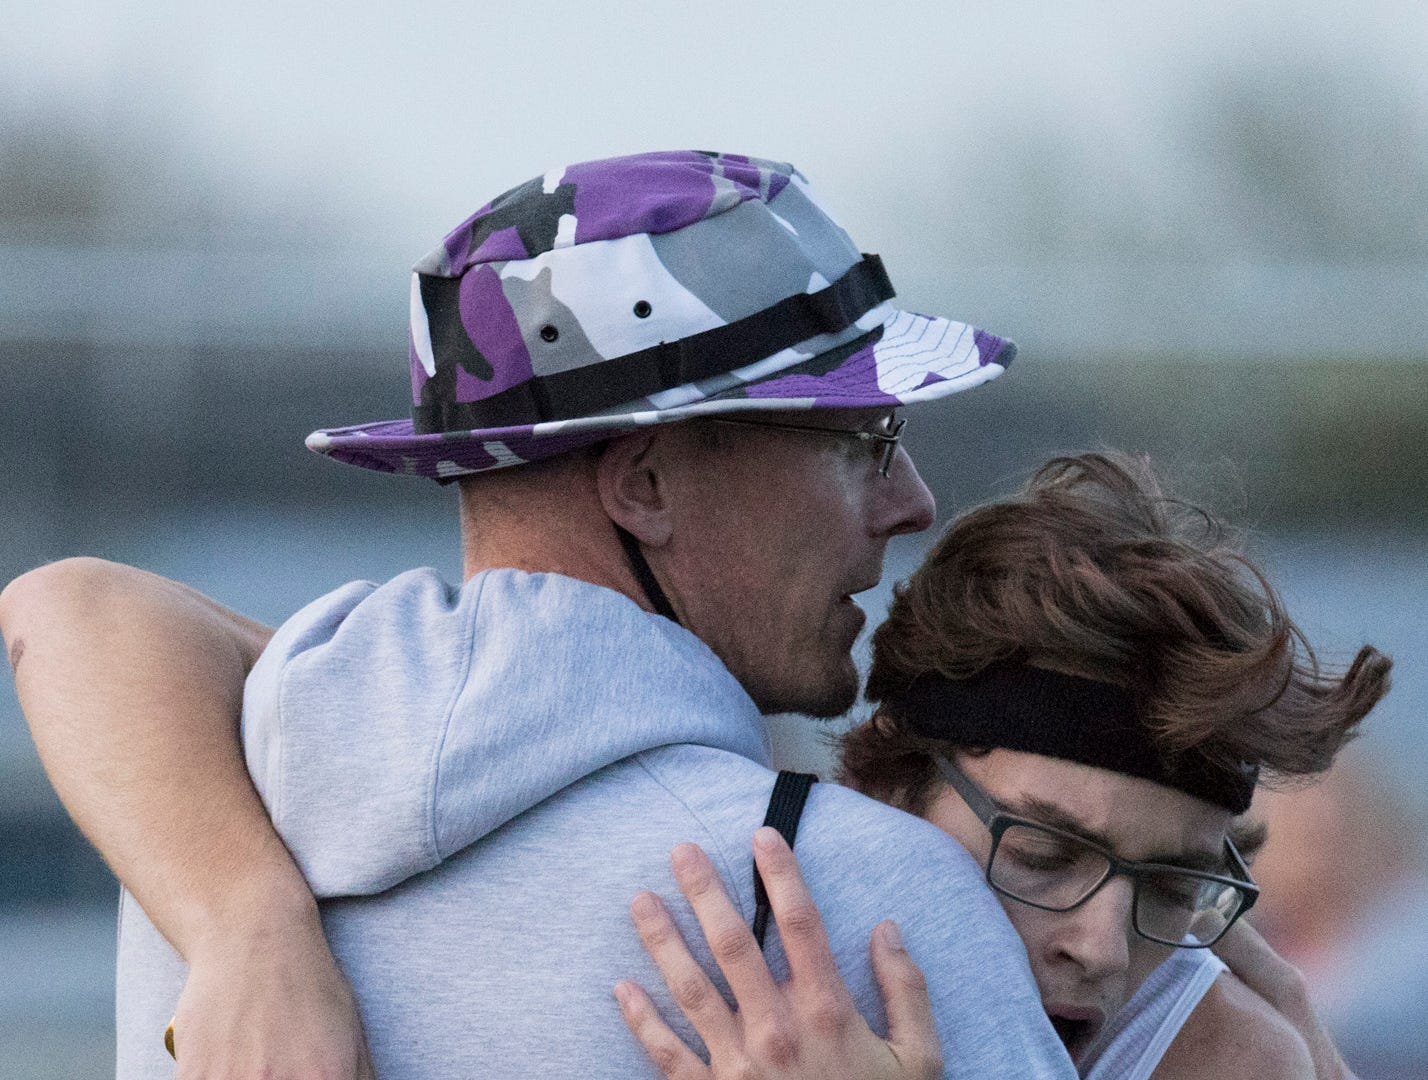 Unioto Head Coach Matt Paxton supports runner Robert Immell after Immell almost collapses from exhaustion after completing the last leg of the boys 4x400 meter relay Tuesday night in Frankfort, Ohio, on April 30, 2019. The Unioto boys won the relay with a time of 3:45.70 during the 95th annual Ross County Meet.